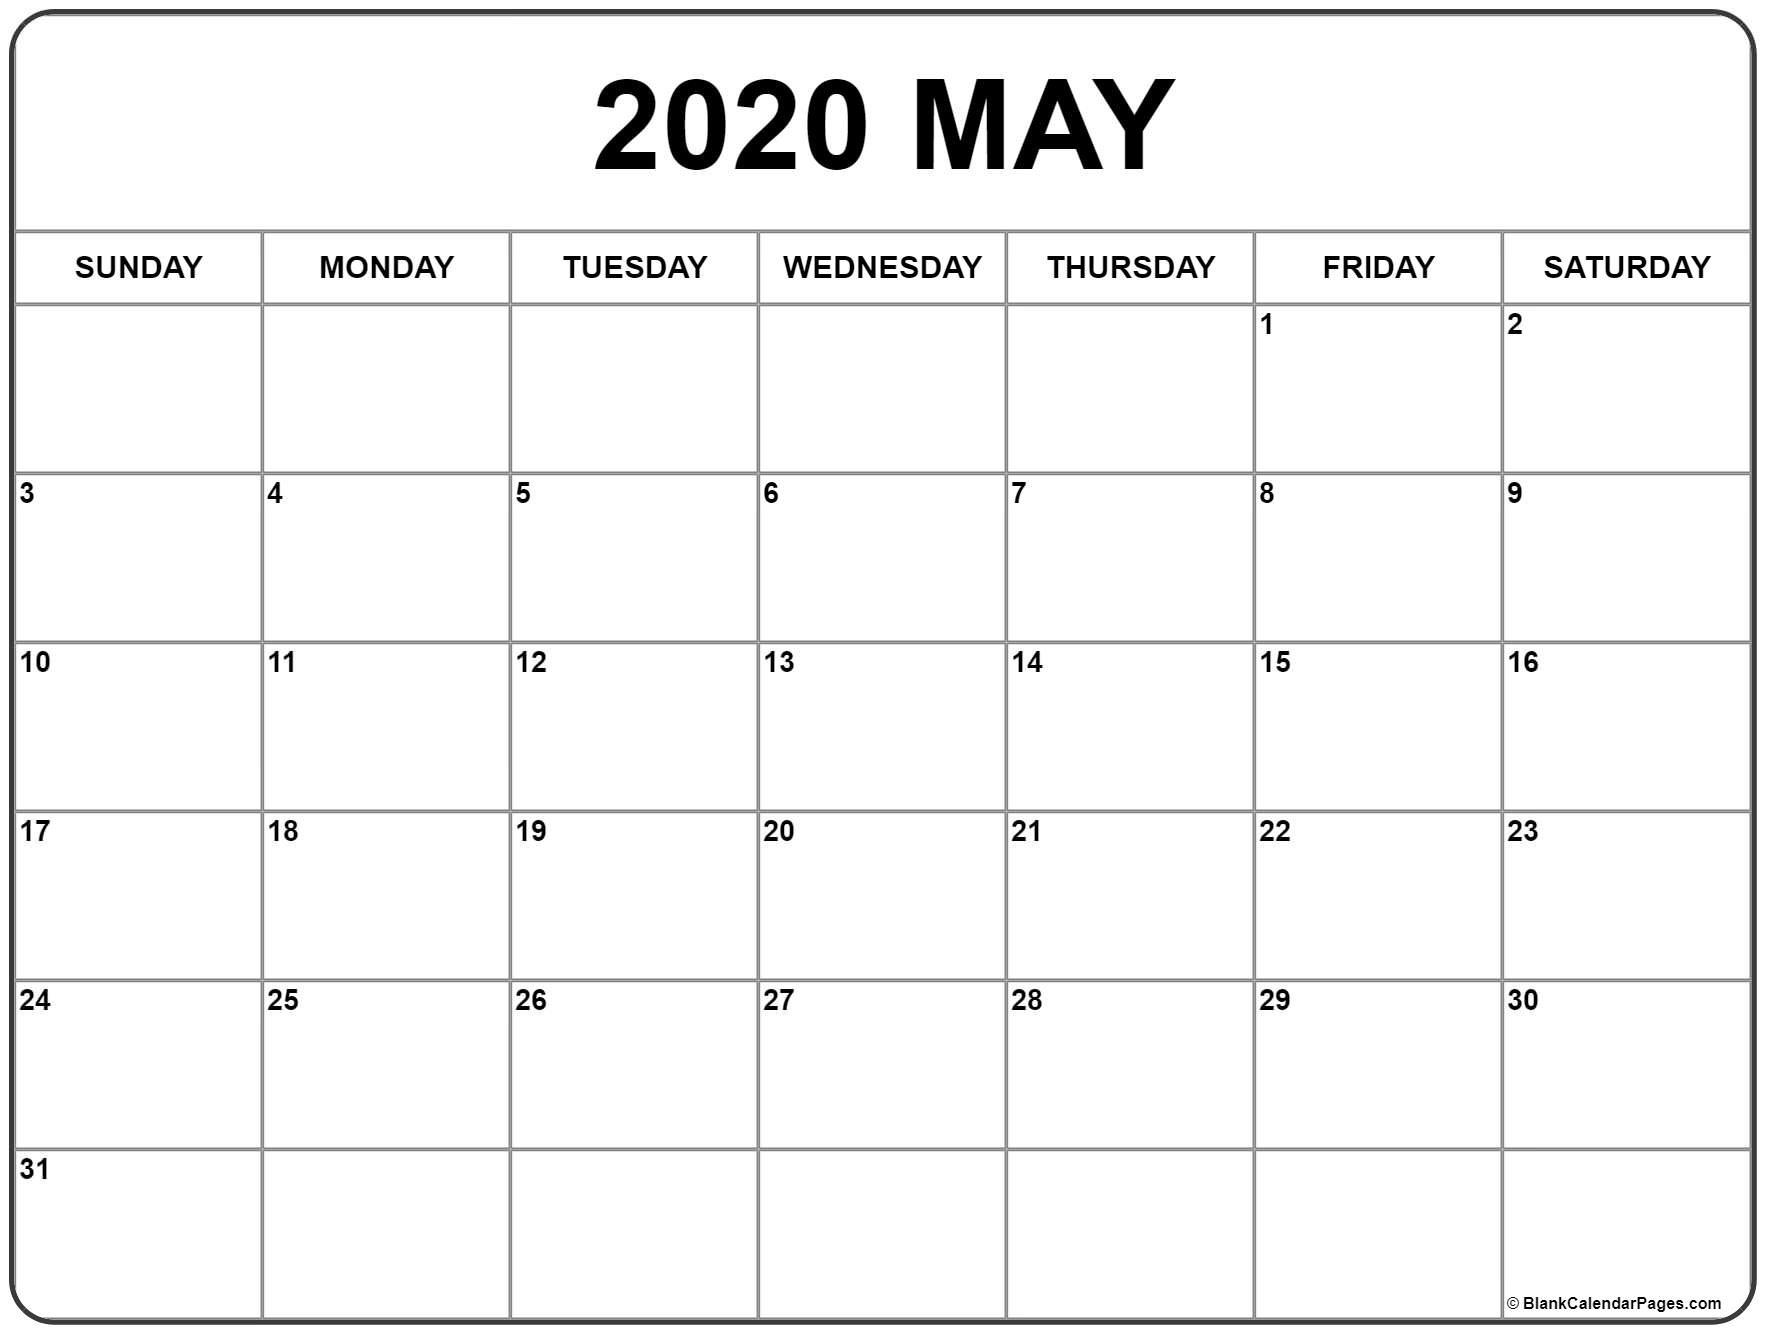 May 2020 Calendar | Free Printable Monthly Calendars  Free Printable Editable Calendars 2020